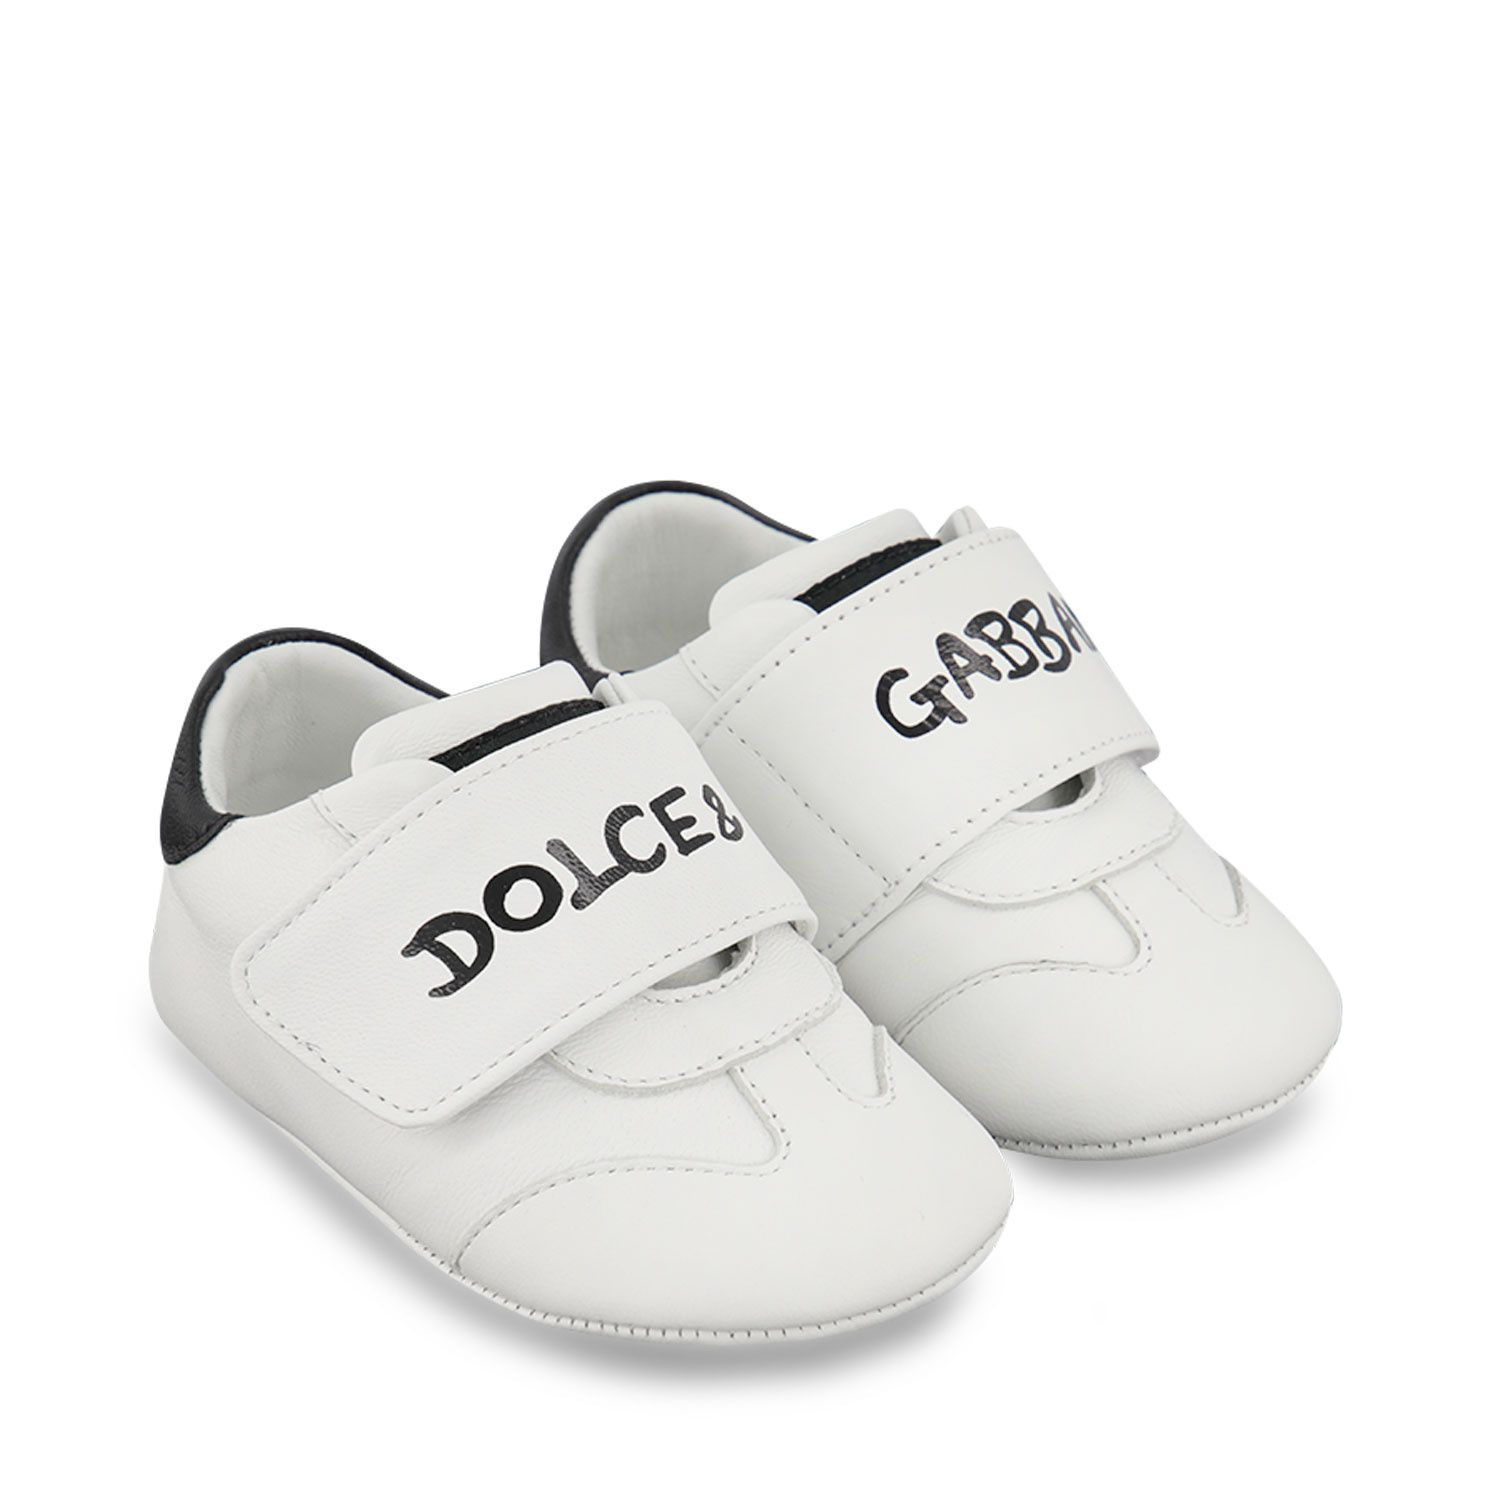 Picture of Dolce & Gabbana DK0109 baby shoes white